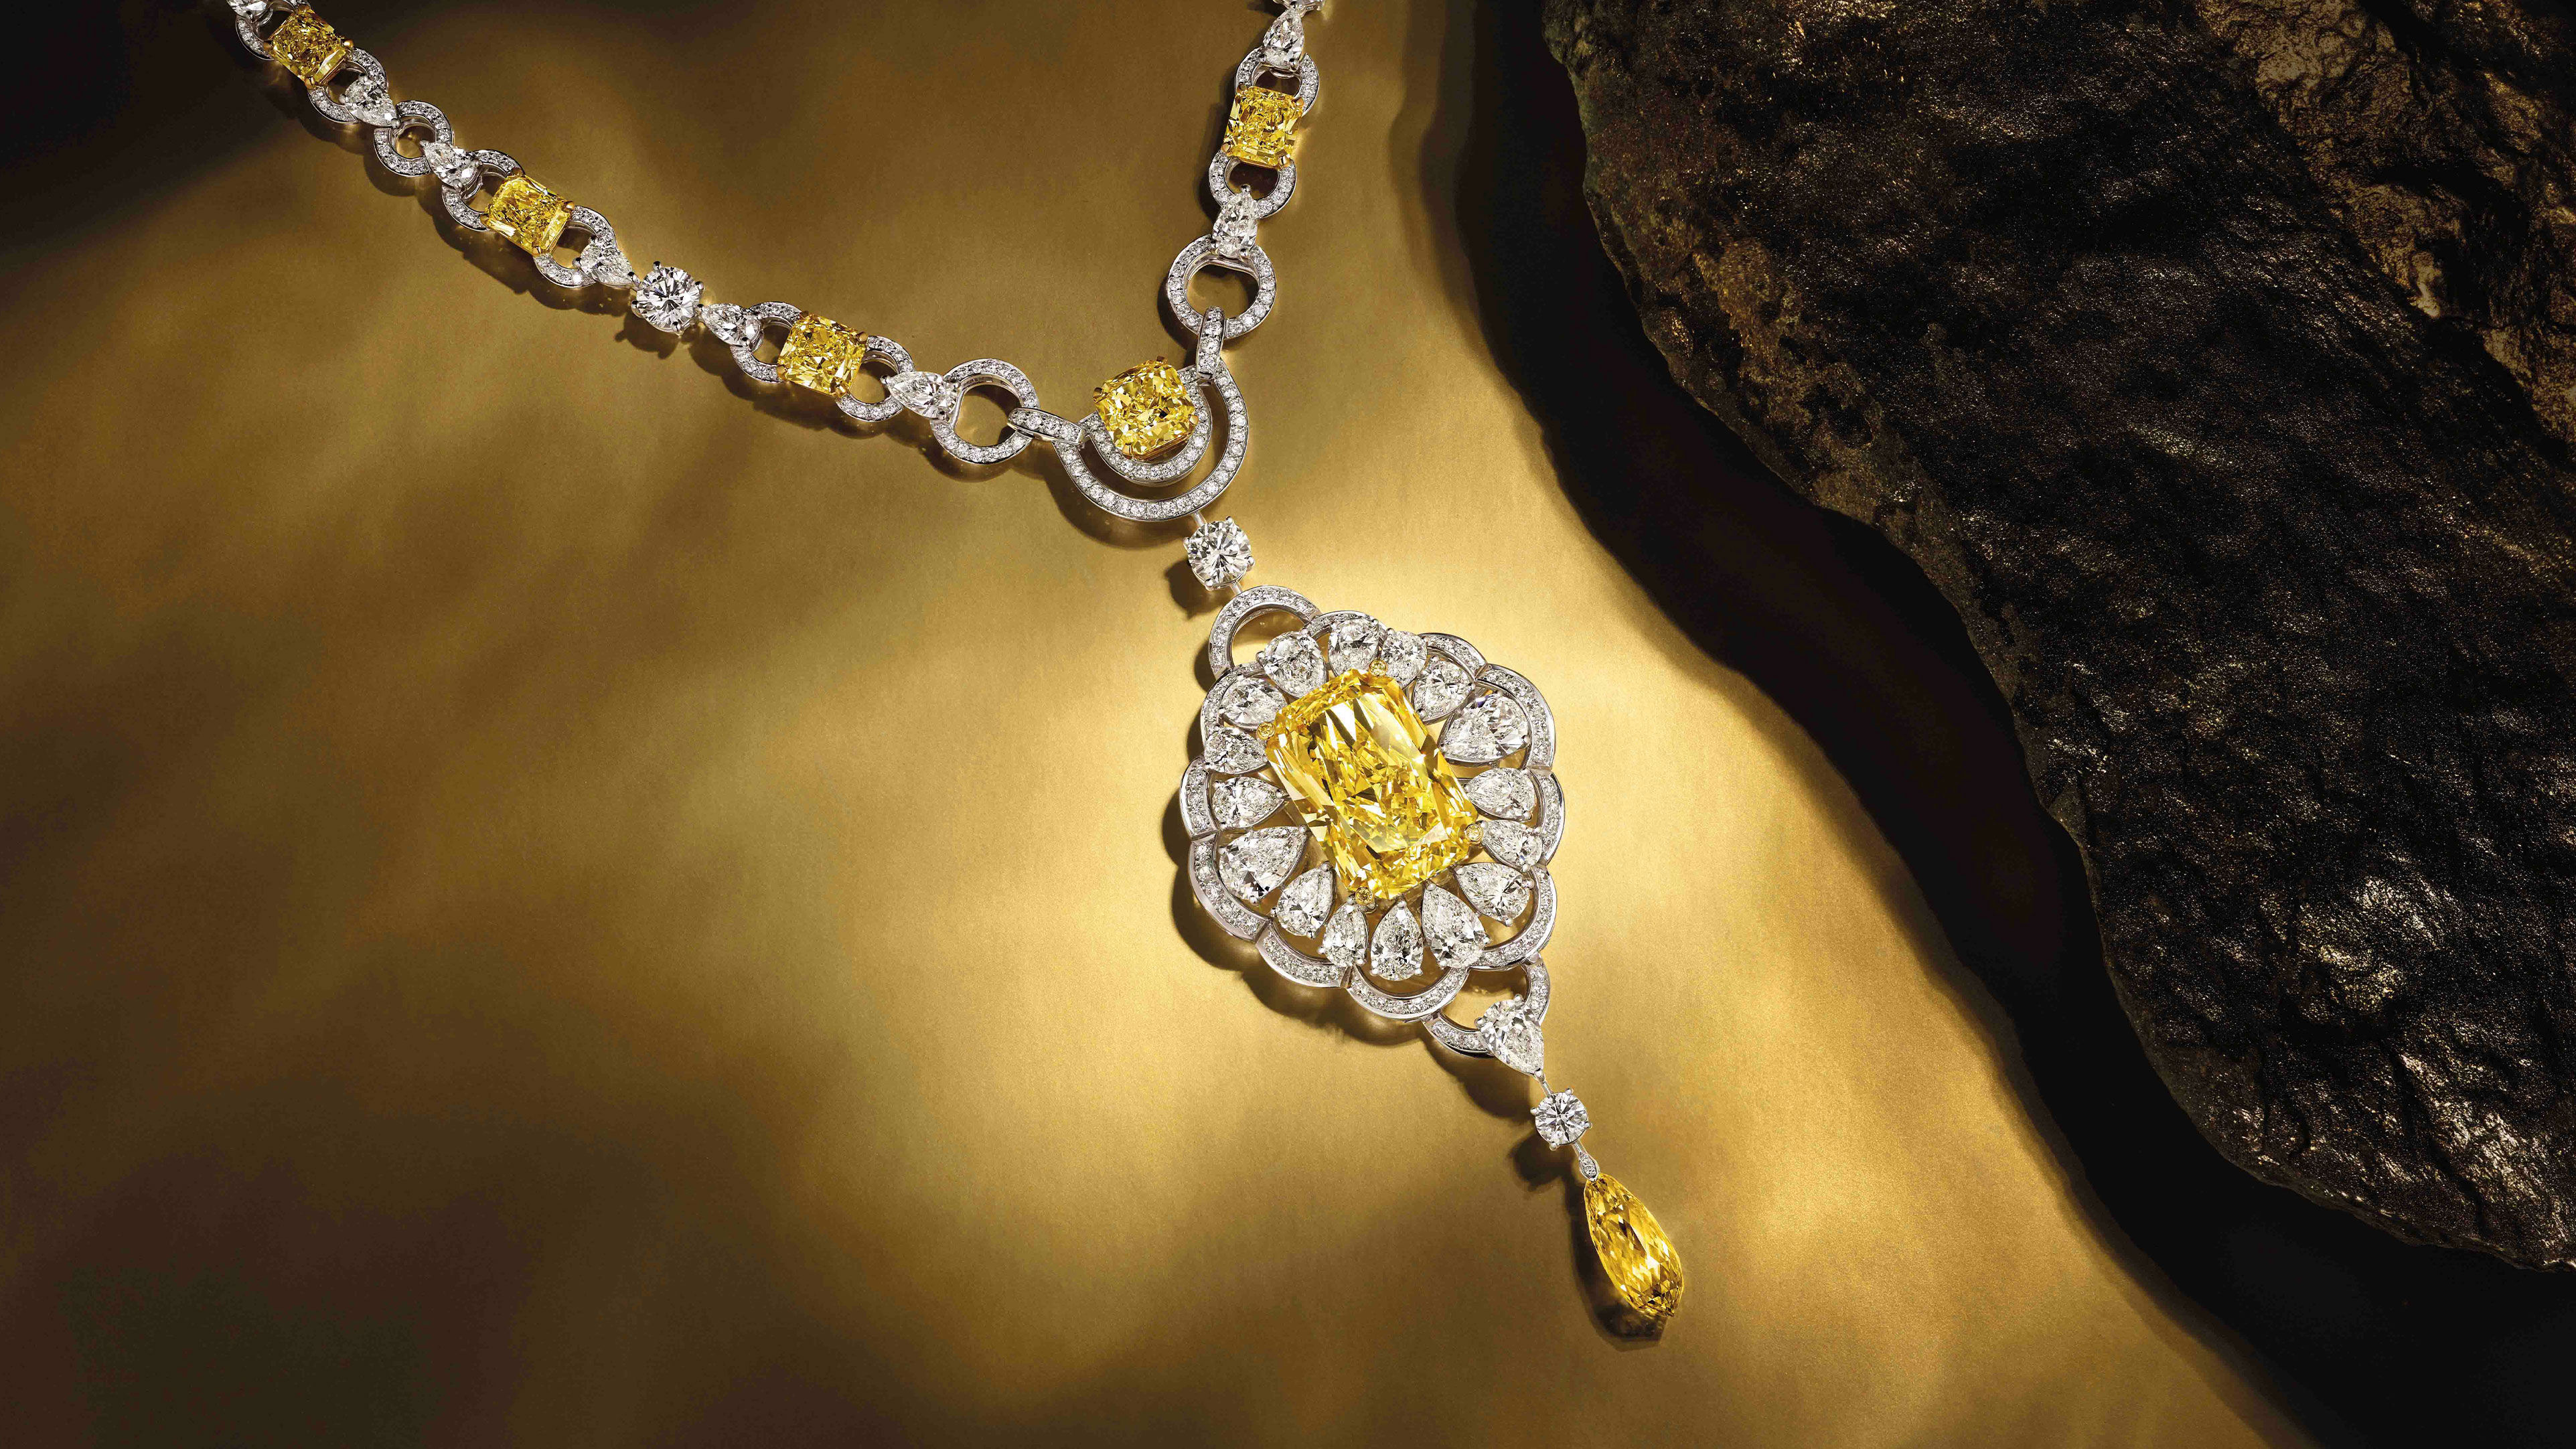 A Graff yellow and white diamond high jewellery necklace next to a rock